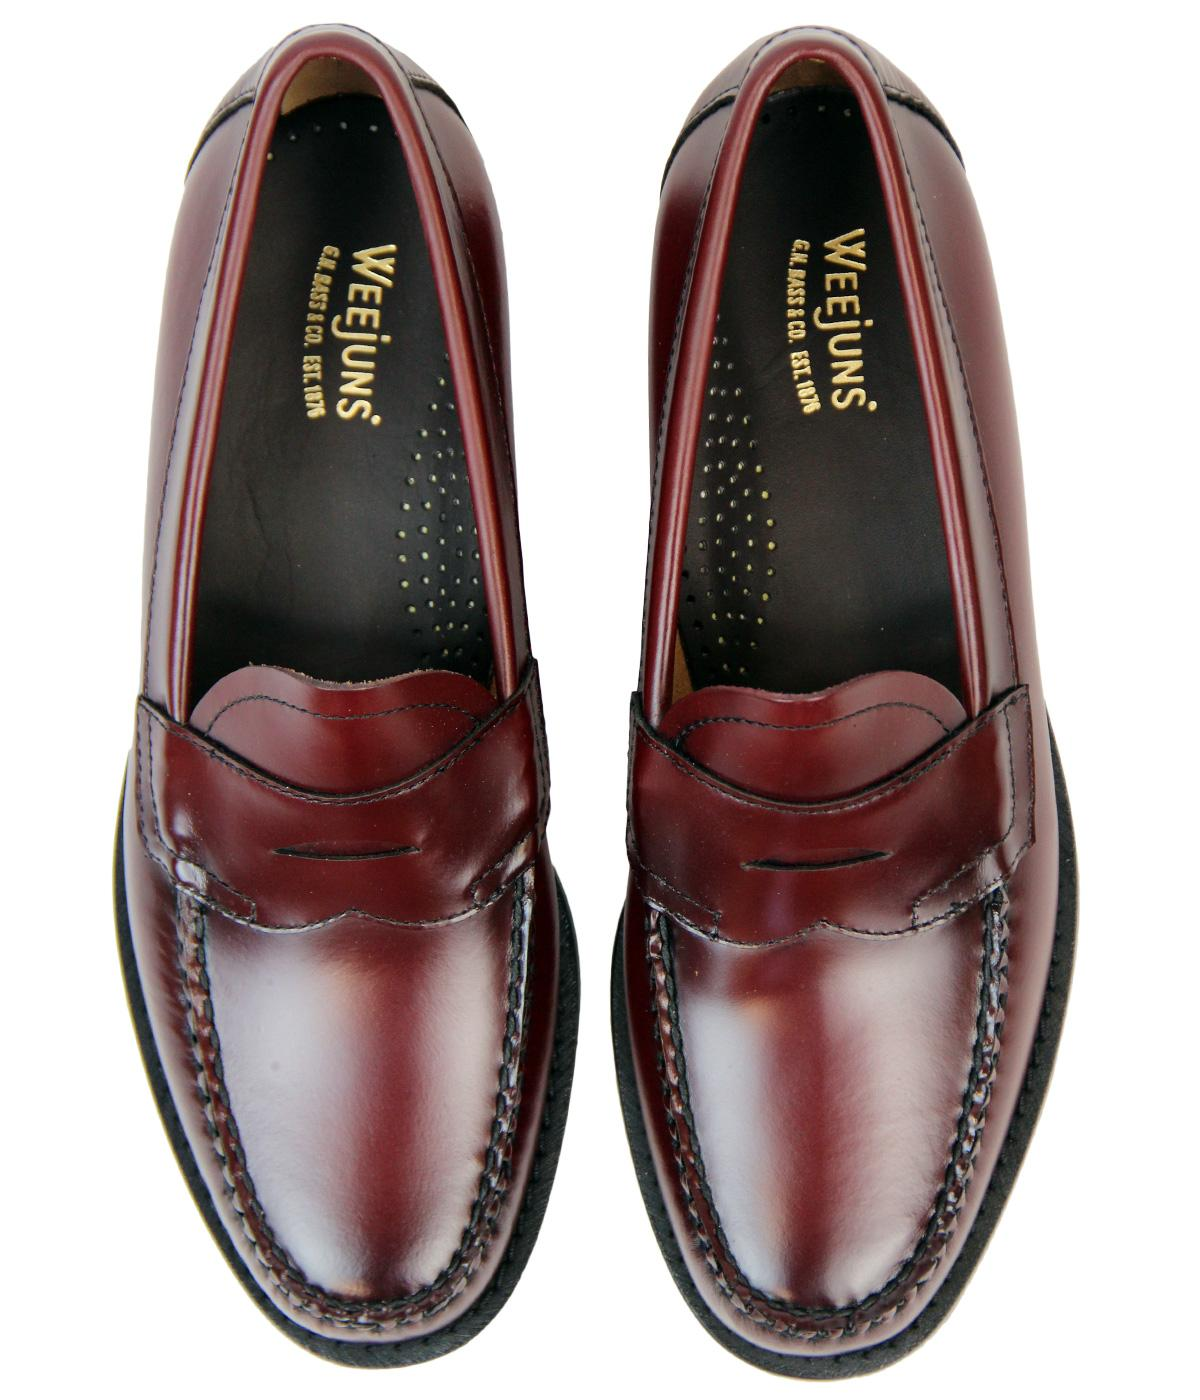 BASS WEEJUNS Logan Retro 60s Mod Classic Penny Loafer ...